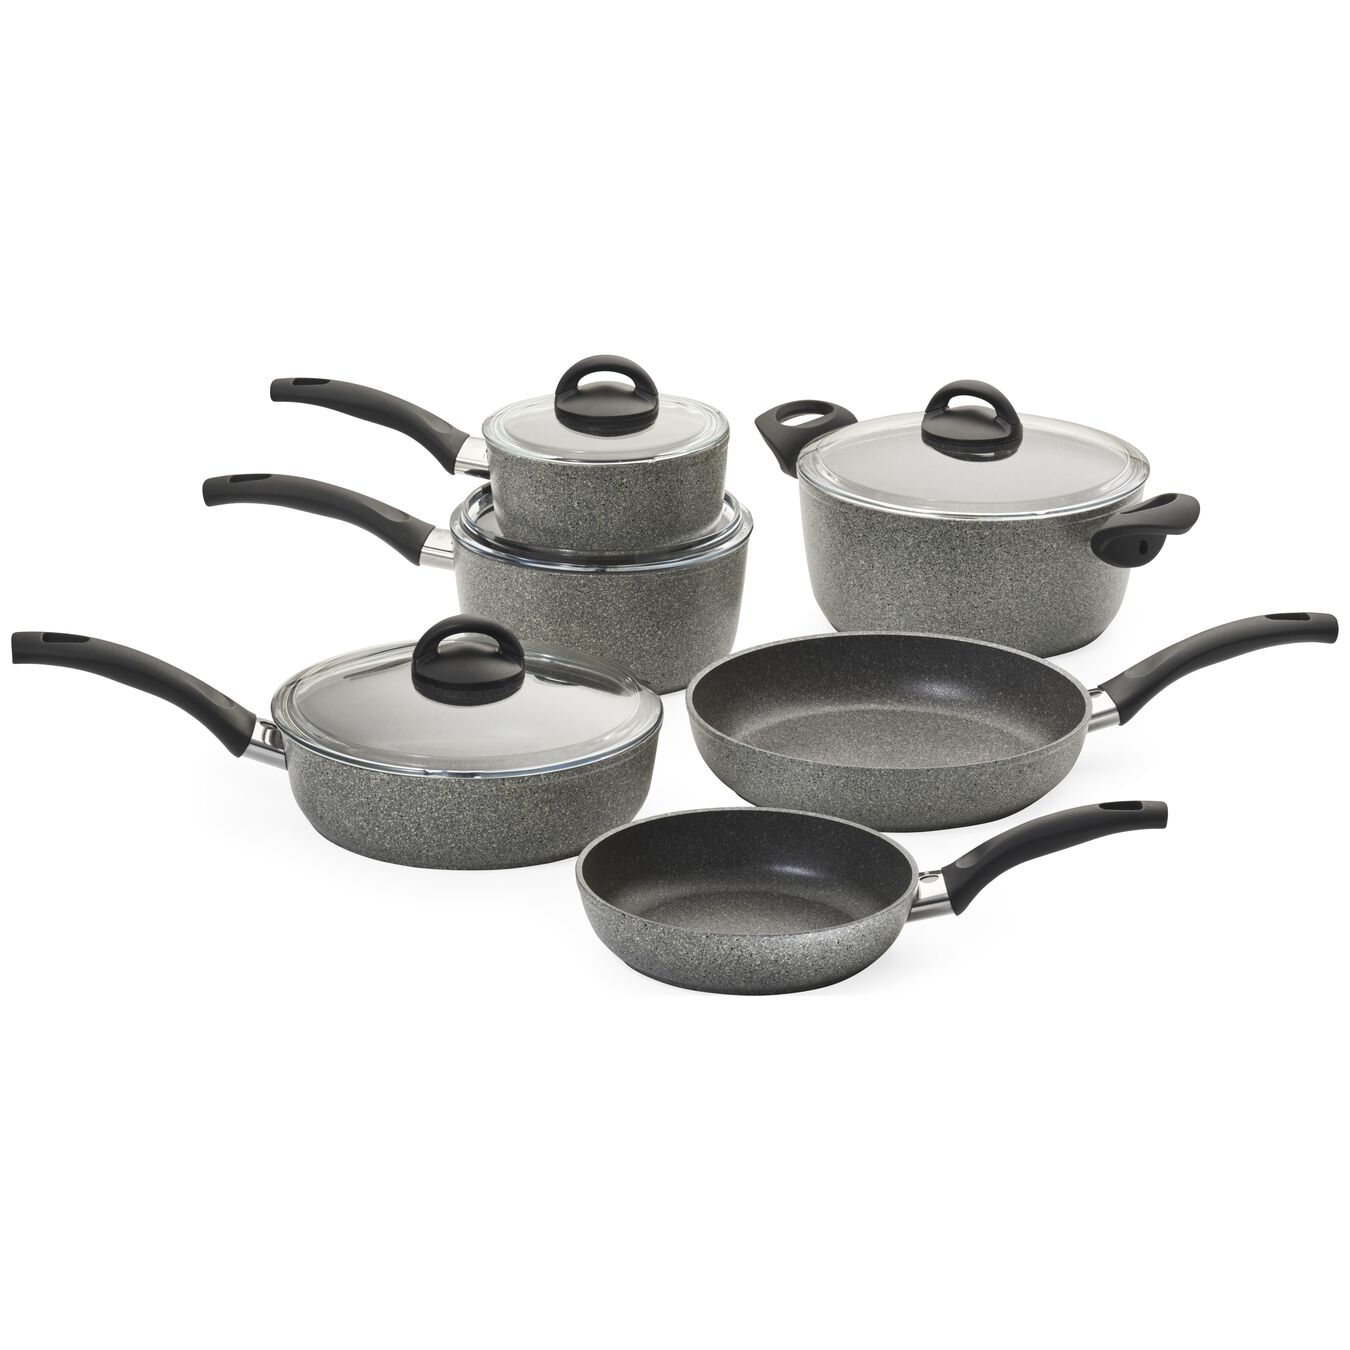 10-pc Nonstick Cookware Set,,large 1